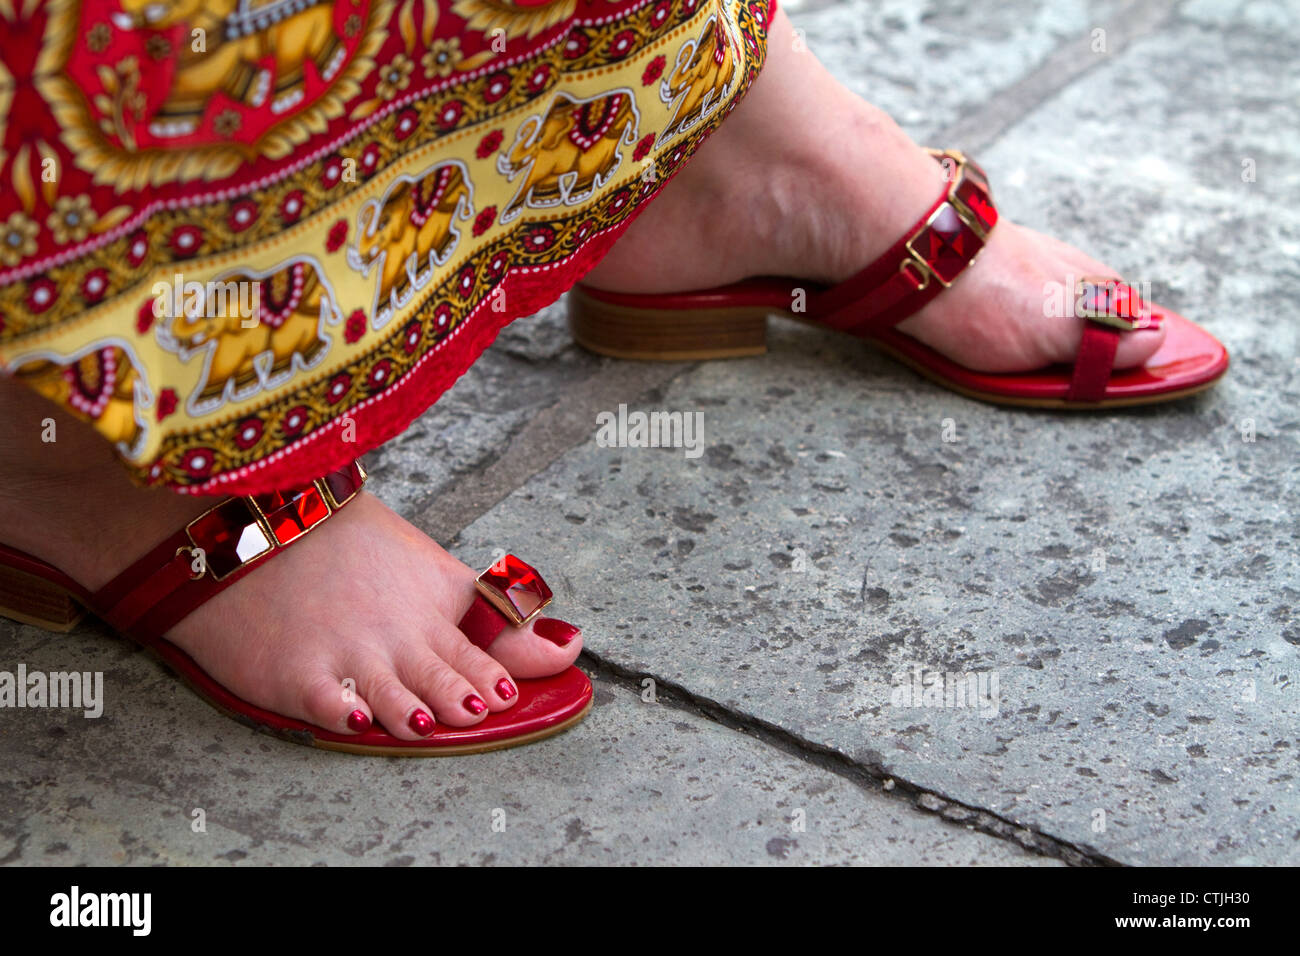 75afe937106b79 Woman wearing red jeweled sandals at the Temple of the Emerald Buddha at  the Grand Palace